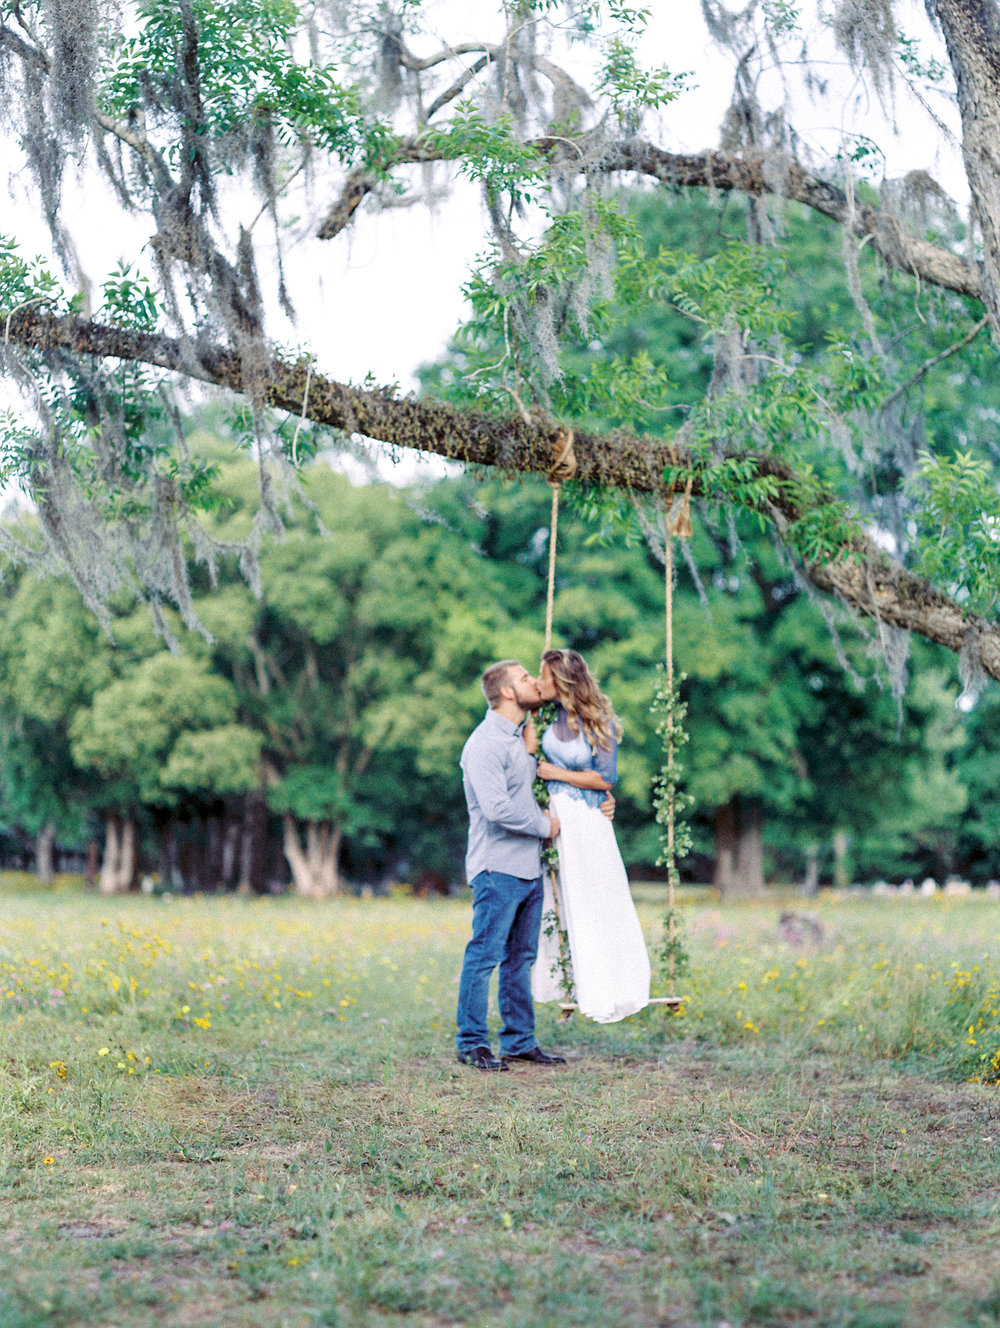 Lisa Silva Photography- Jacksonville, Florida Fine Art Film Wedding Photography (8 of 108).jpg